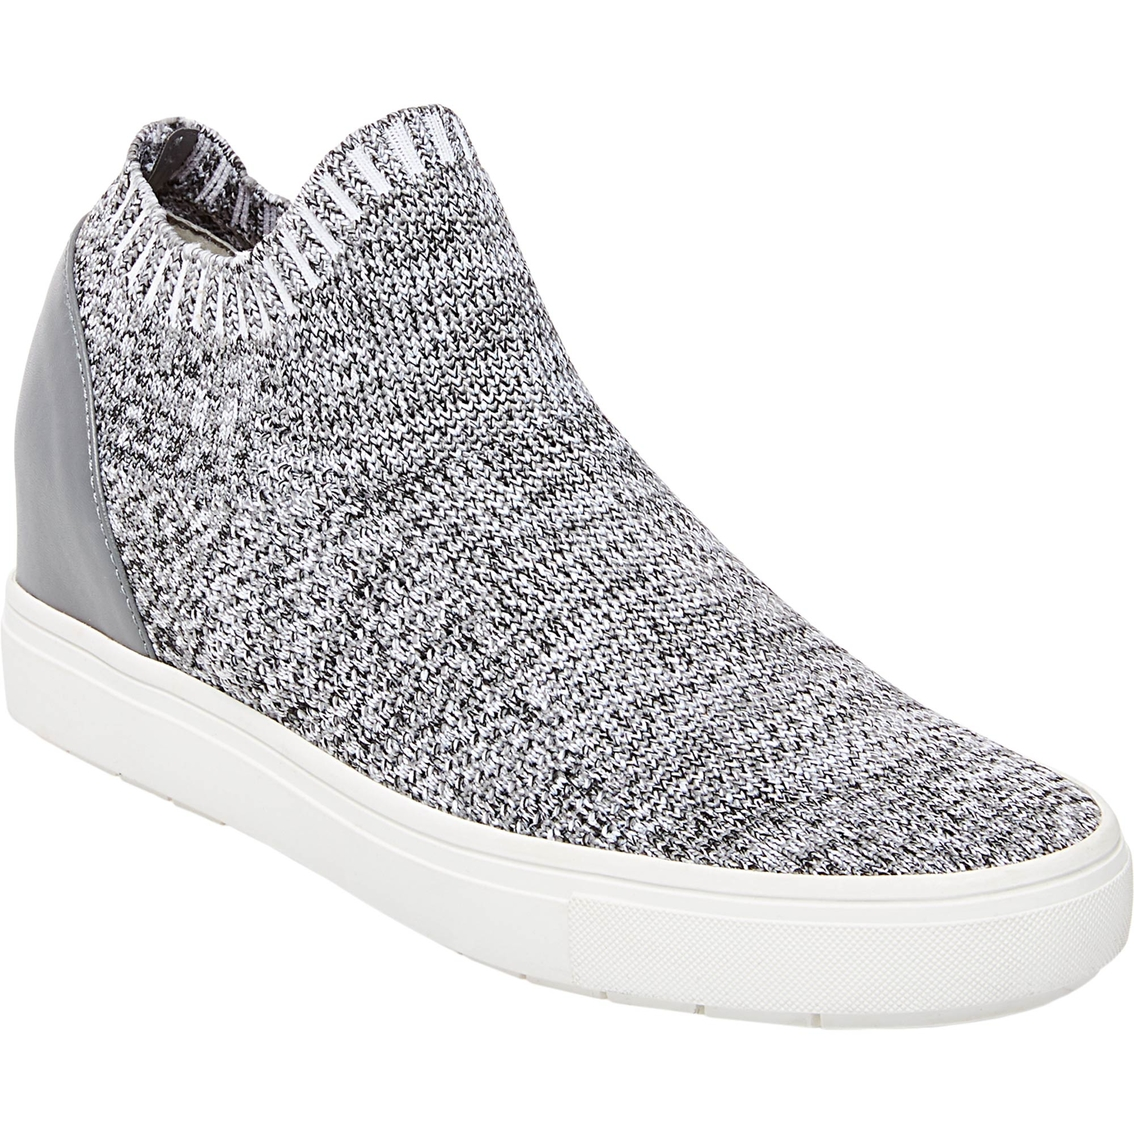 64ac66b33a6 Steve Madden Sly Laceless Stretchy Knit Sneakers | Casuals | Shoes ...